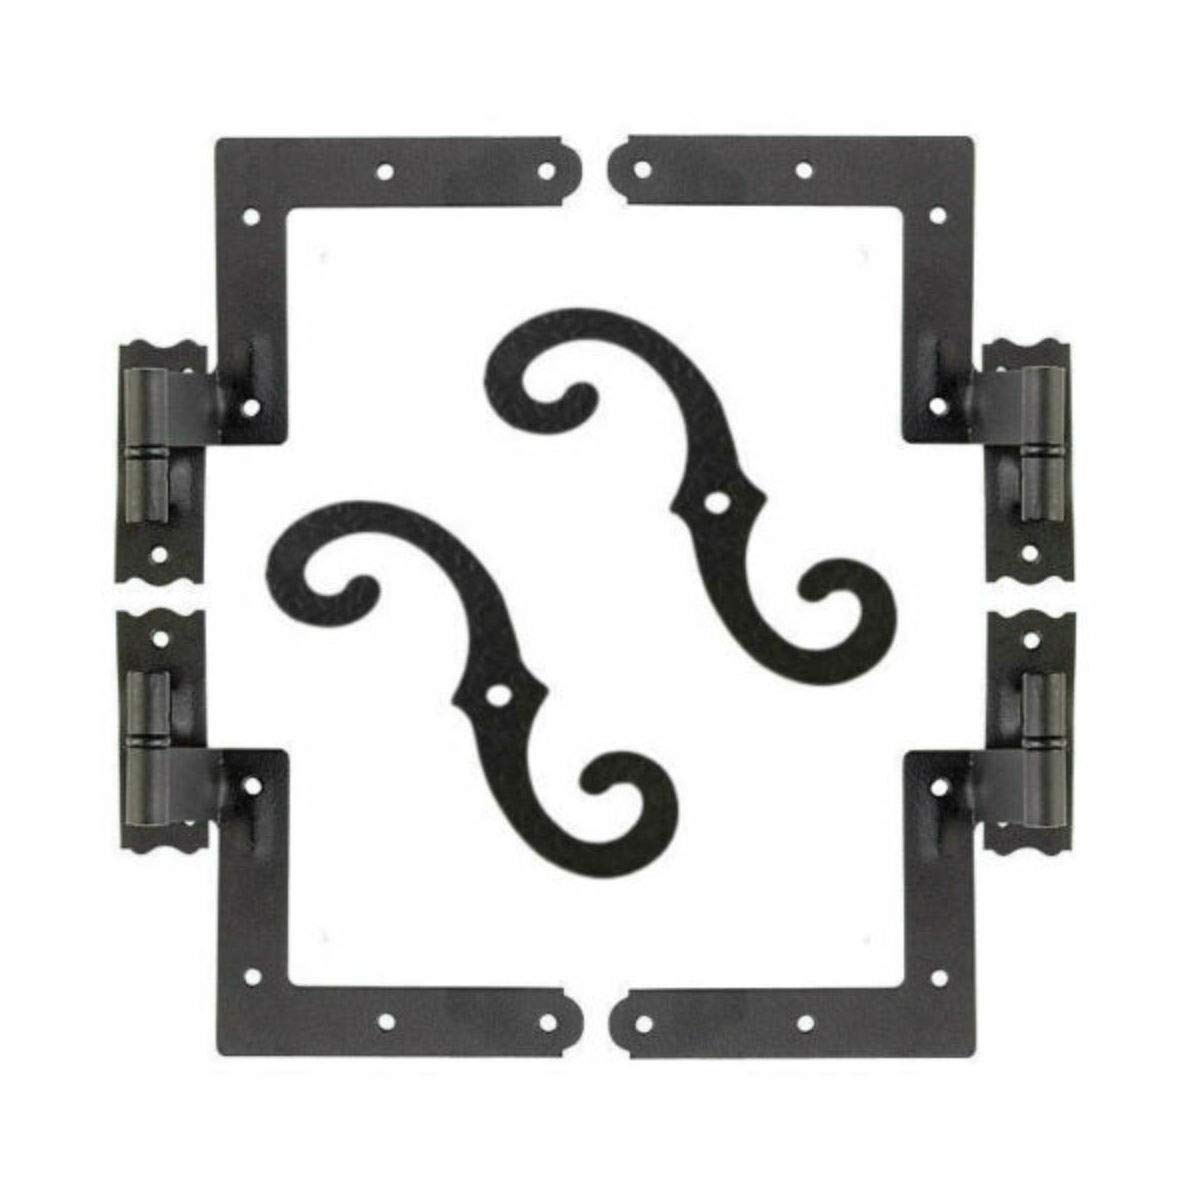 Shutter Hardware Hinges and Pintels Brick Mount (4) + Shutter Dogs S Hooks (2) by Unknown